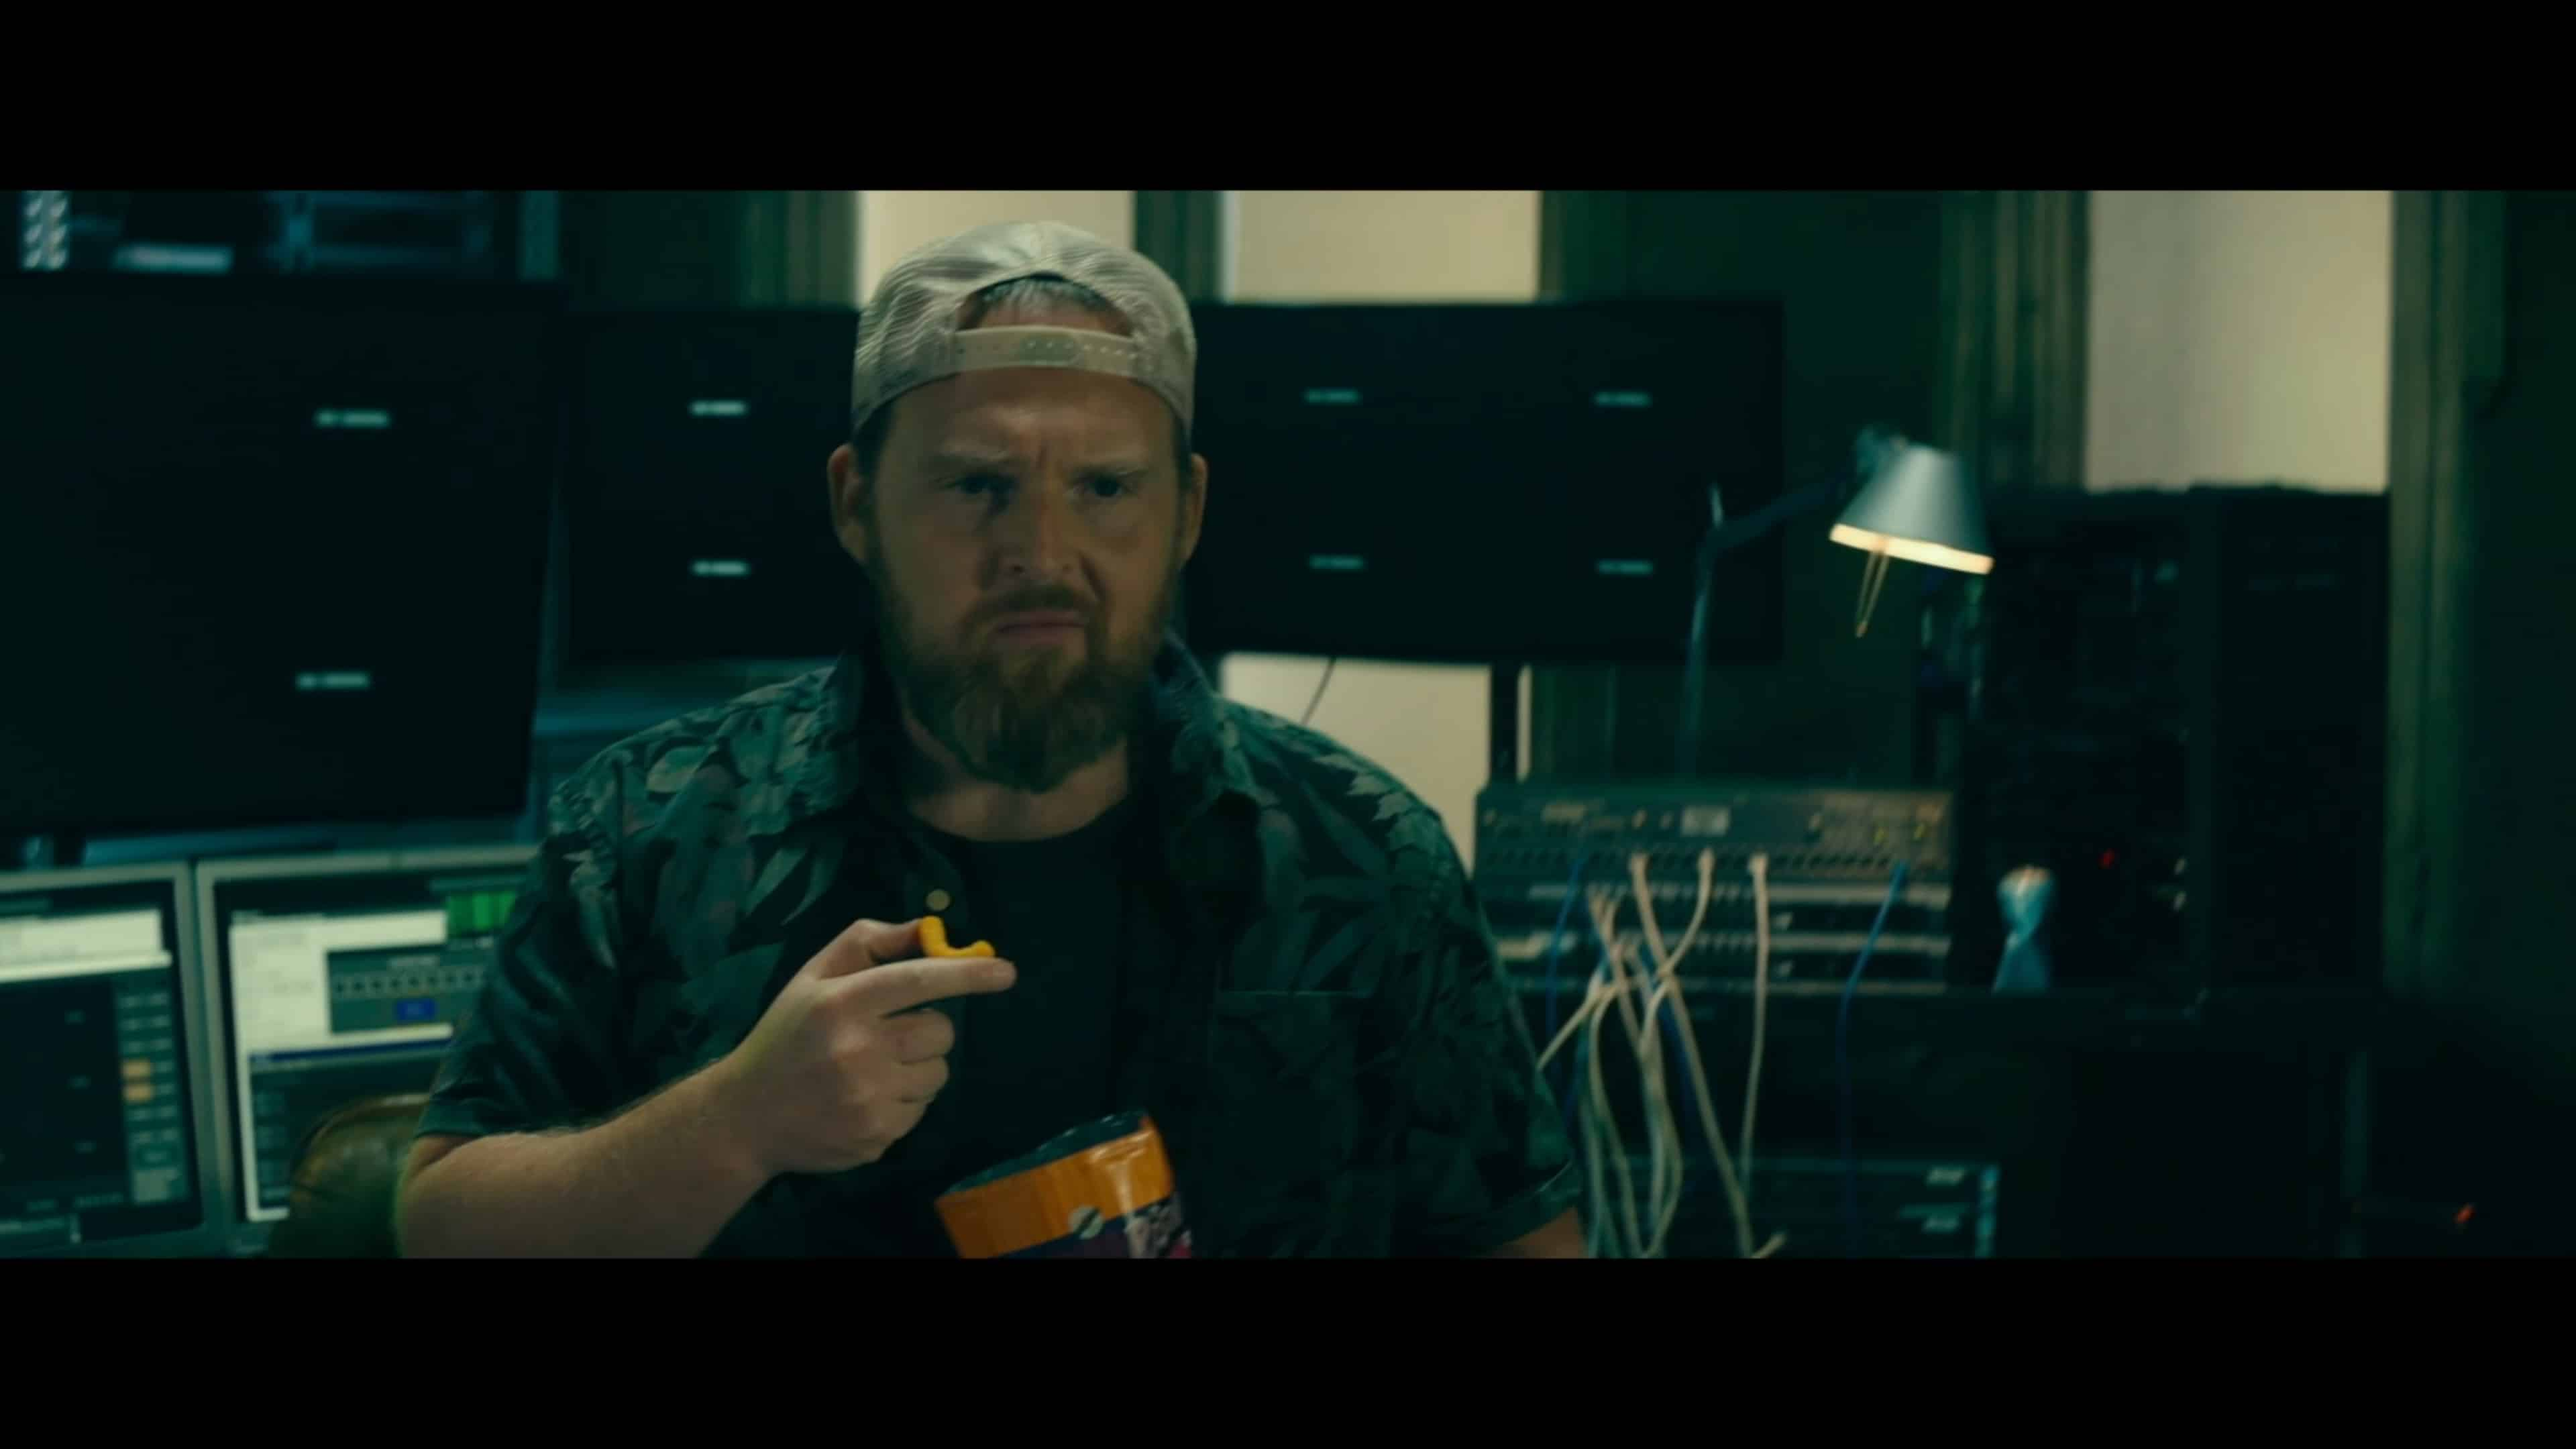 Klaus (Axel Stein) having a snack